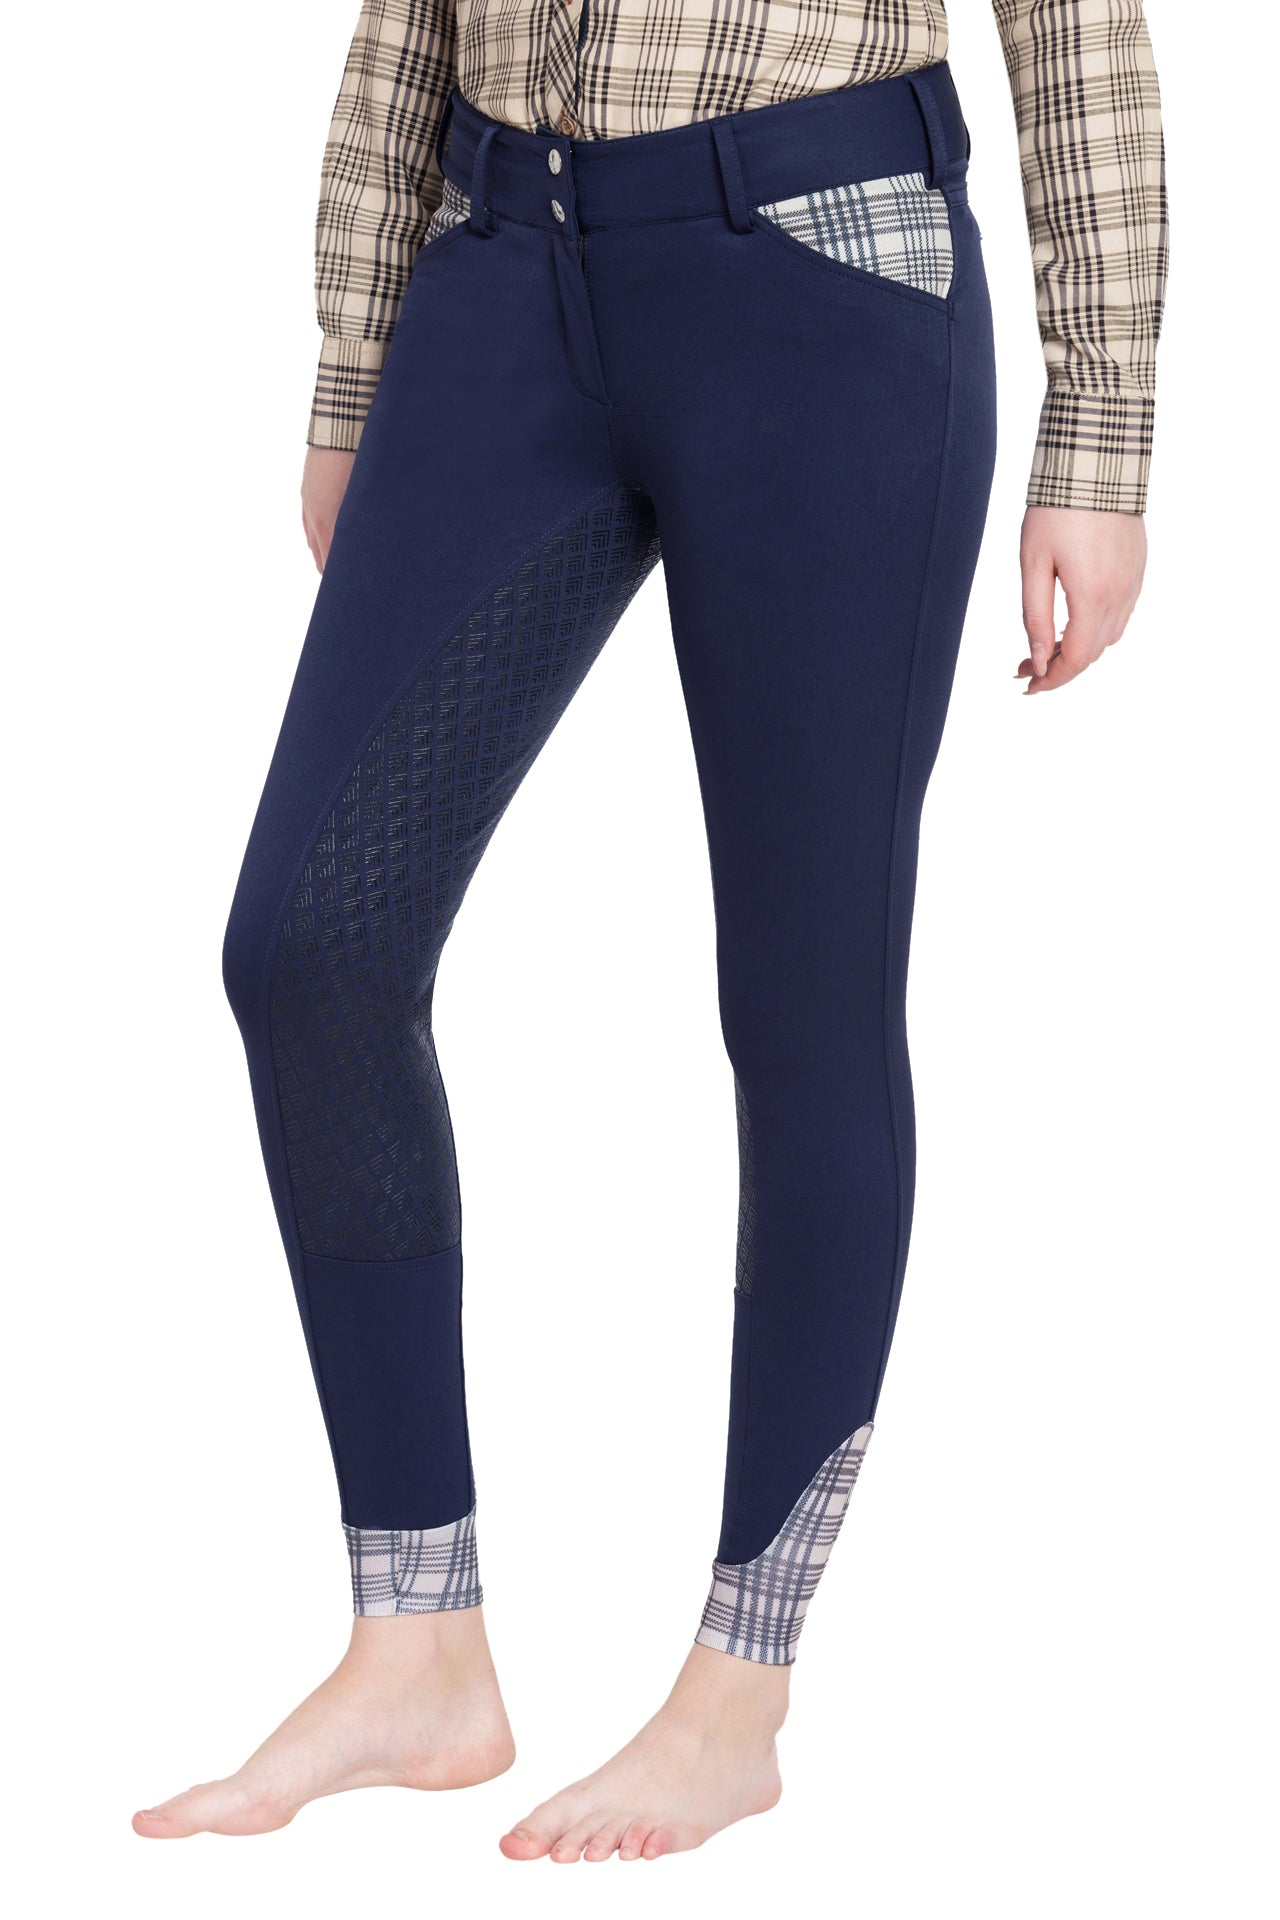 5/A Baker Ladies Pro Silicone Full Seat Breeches_447